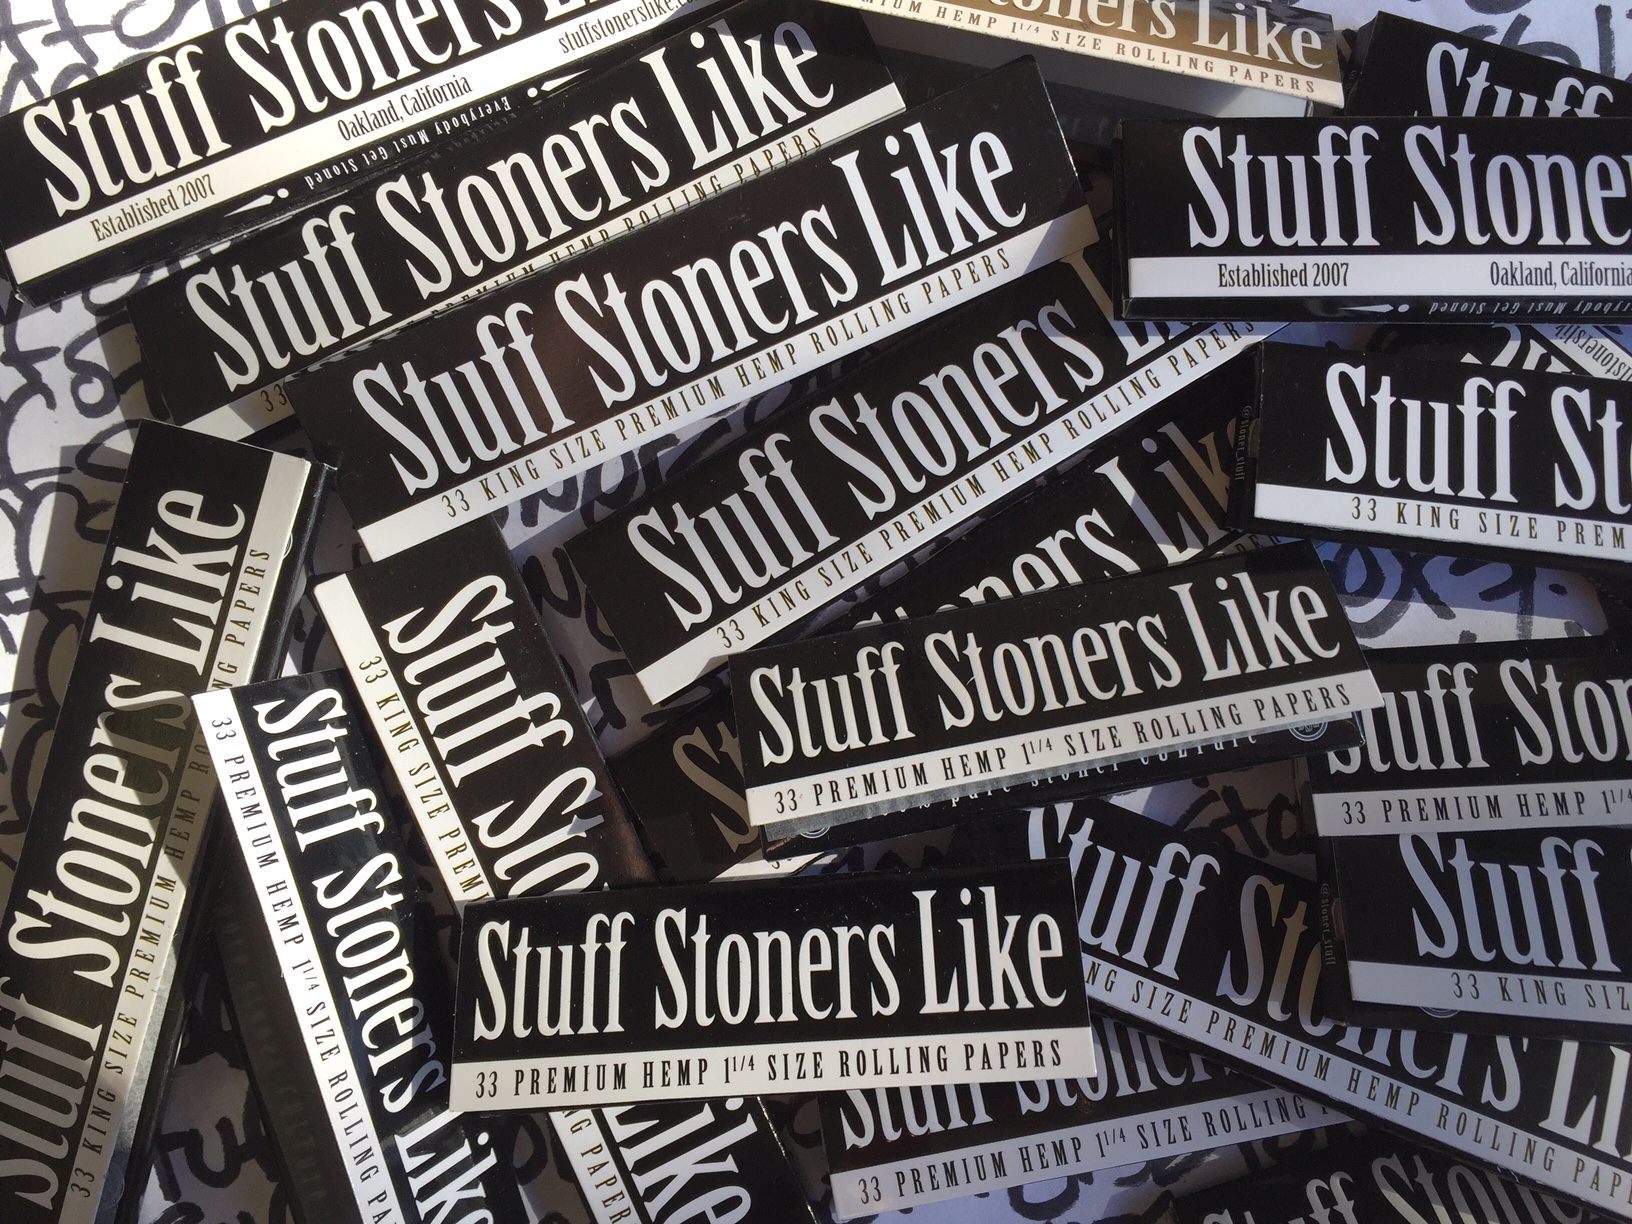 Stuff Stoners Like Rolling papers King Size